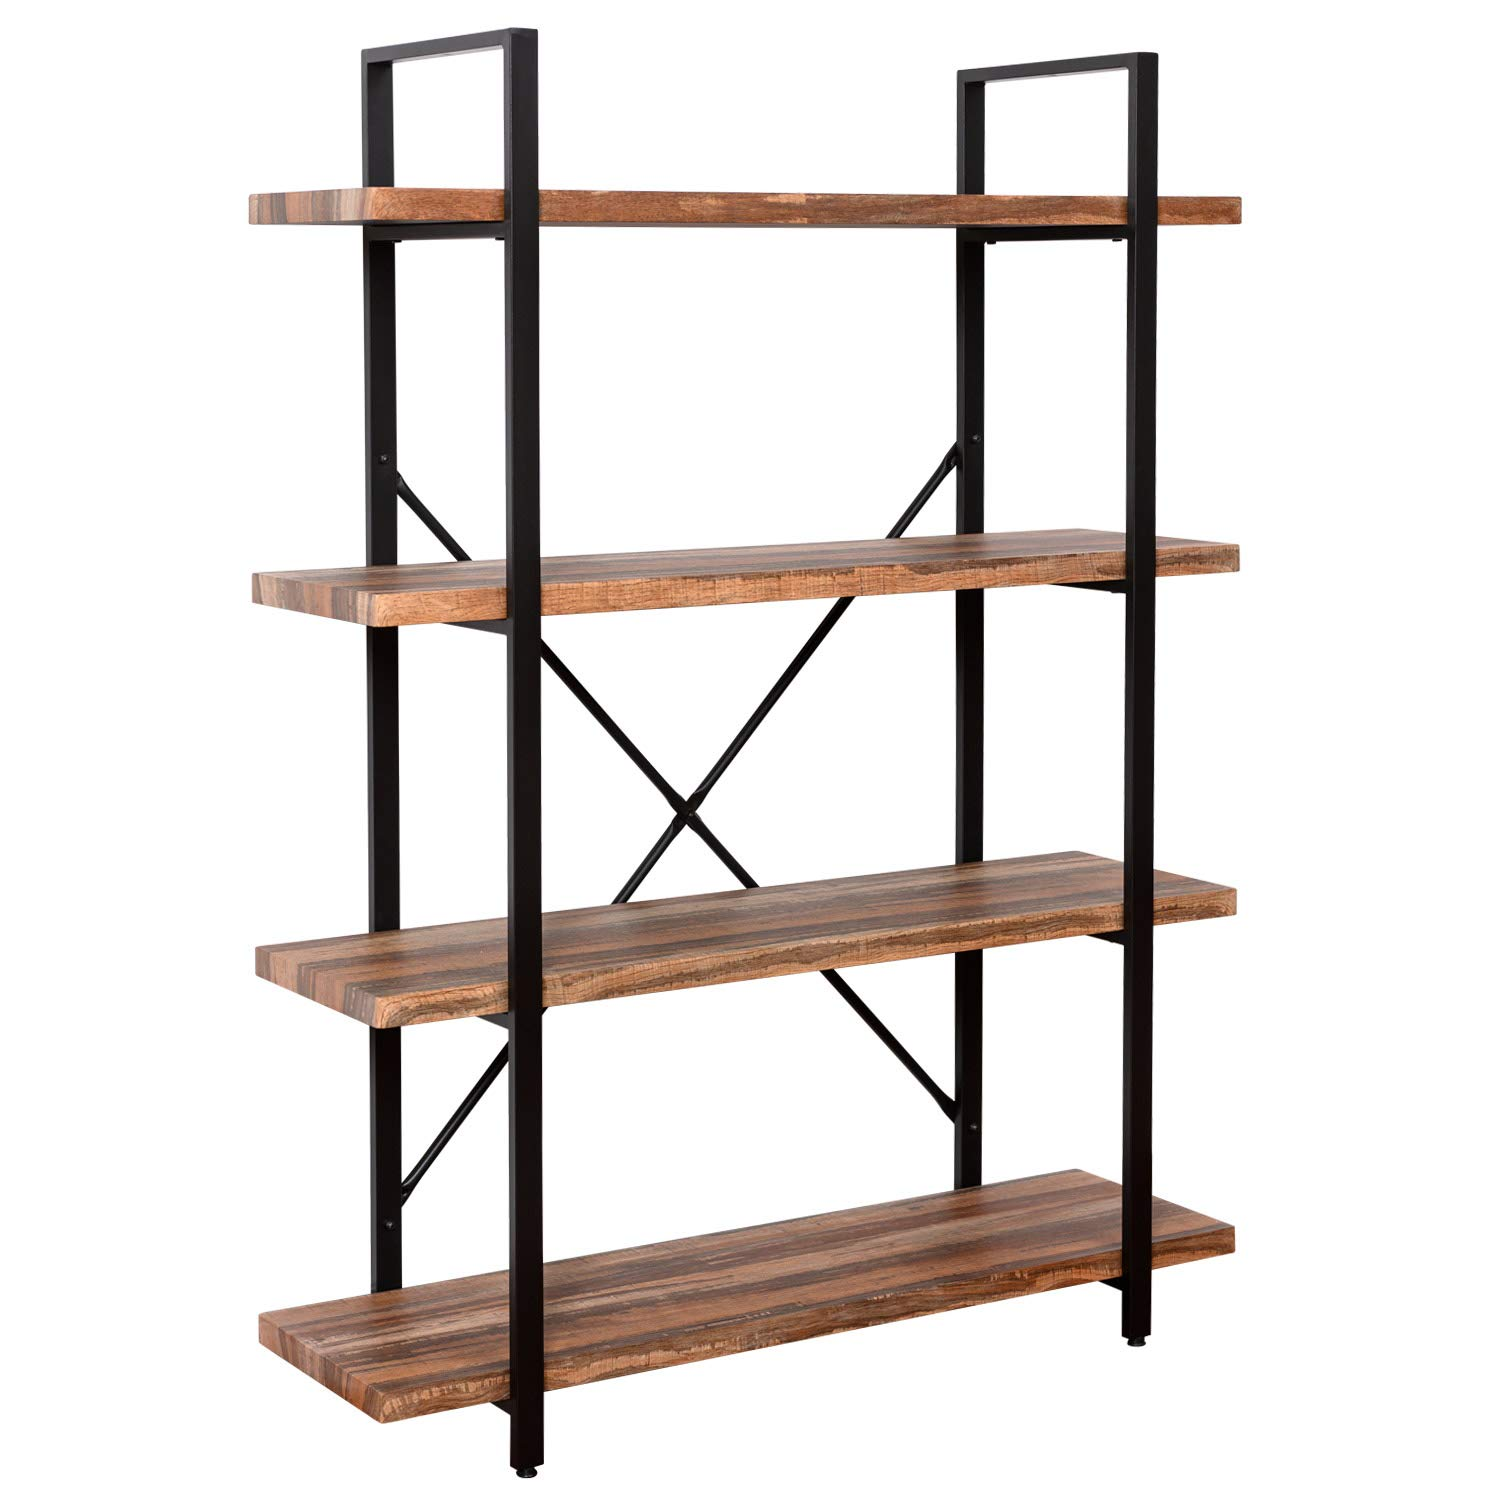 IRONCK Bookshelf and Bookcase 4-Tier, 130lbs/shelf Load Capacity, Industrial Bookshelves Storage Display Shelves, Home Office Furniture, Wood and Metal Frame by IRONCK